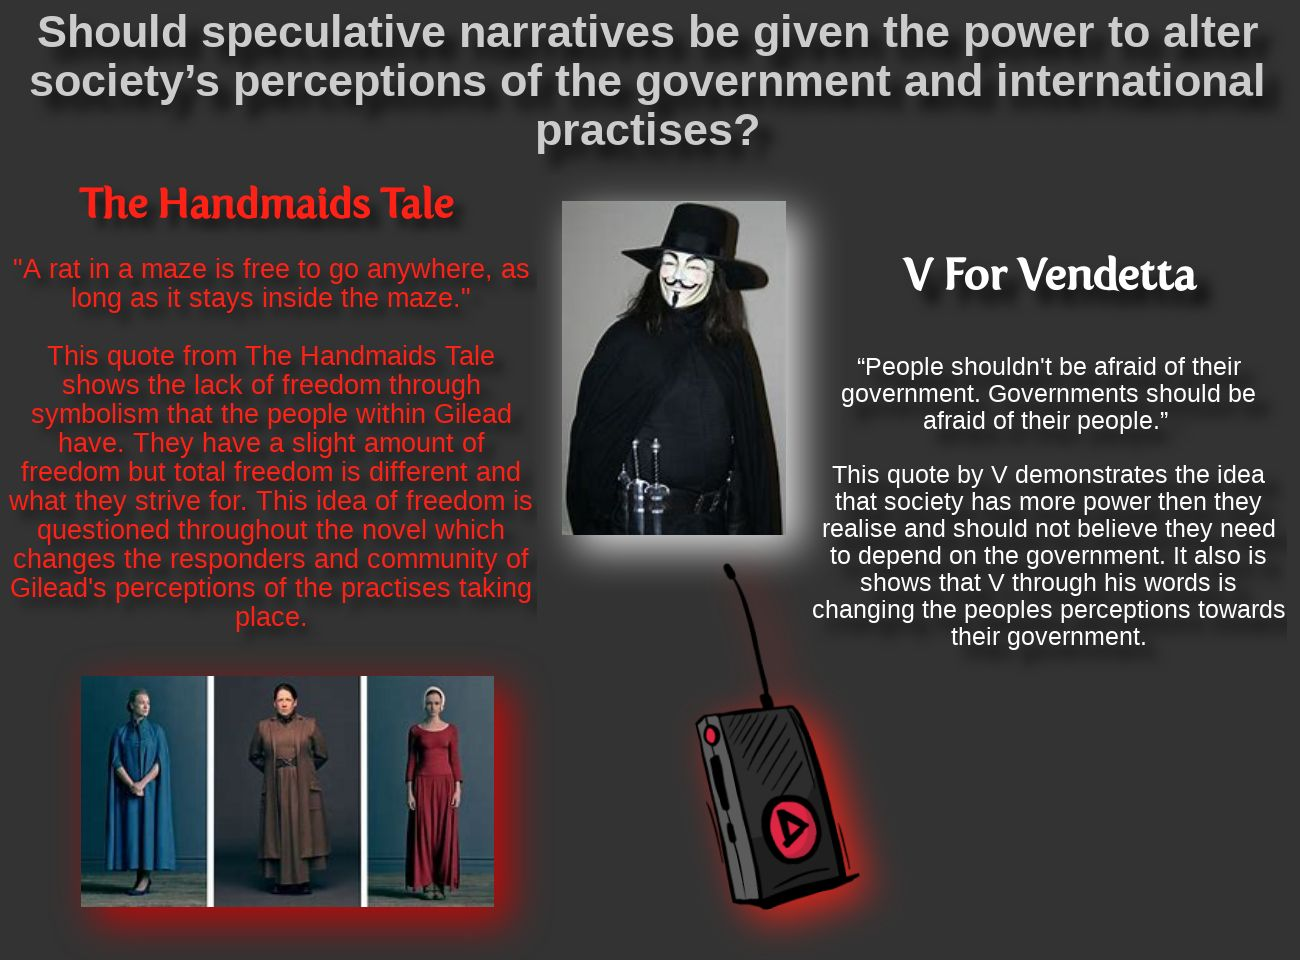 Should Speculative Fiction Be Abolished. The Handmaids Tale and V For Vendetta